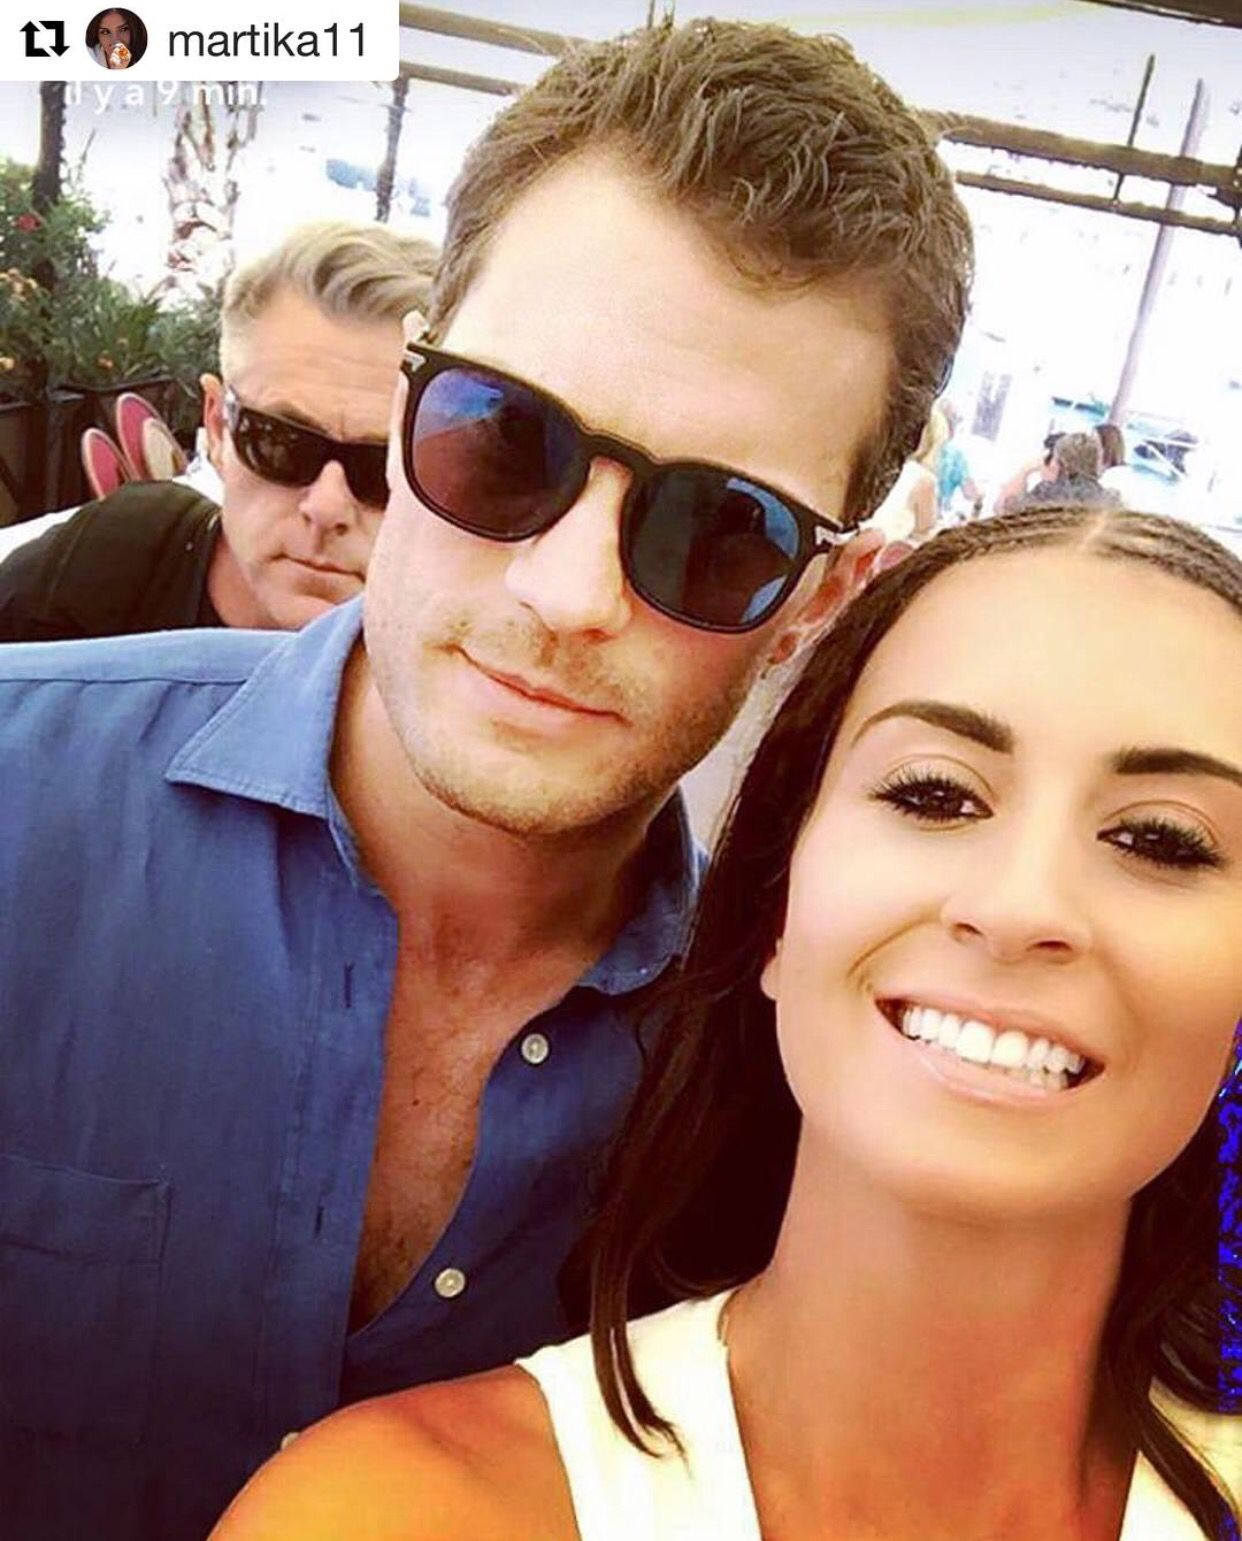 Jamie Dornan and Martika (French reality TV star) in France on July 12, 2016 http://everythingjamiedornan.com/gallery/thumbnails.php?album=36